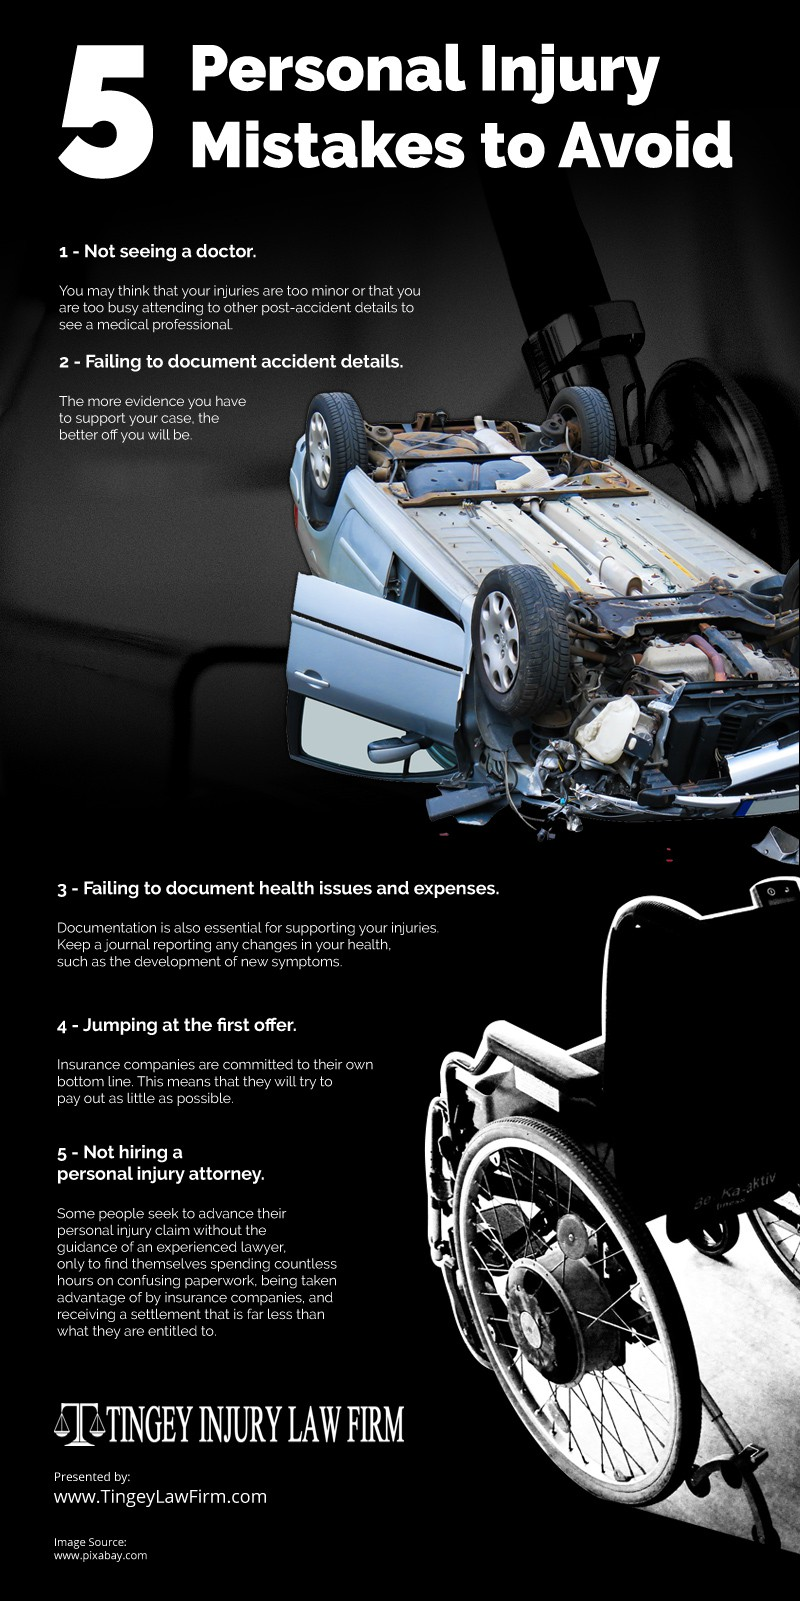 5 Personal Injury Mistakes to Avoid